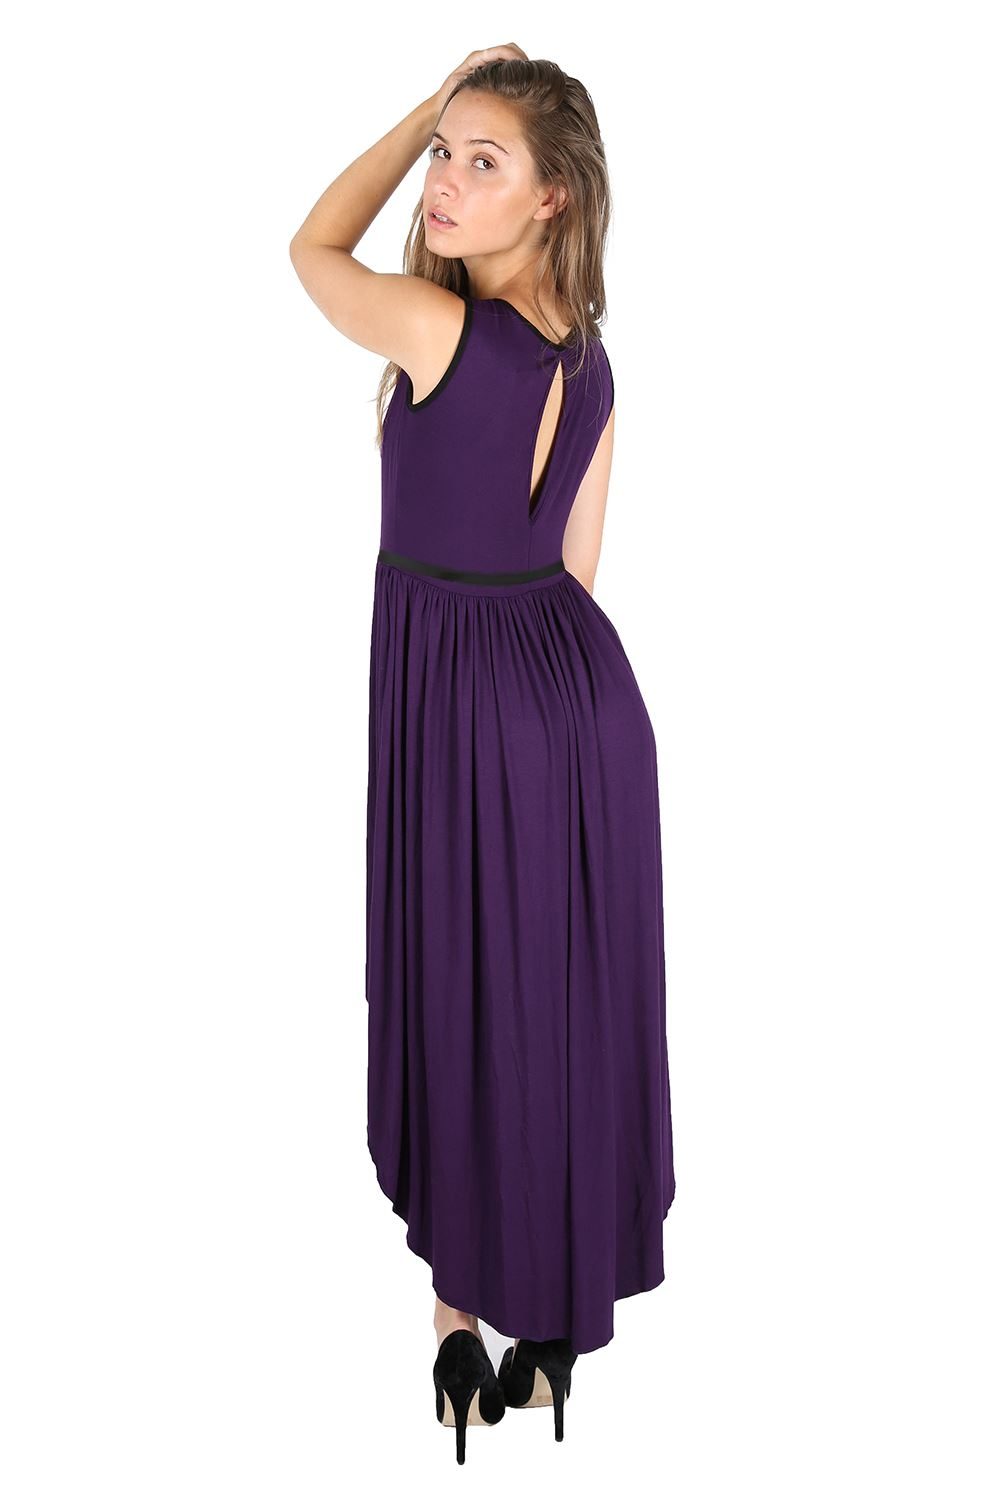 Awesome Women39s Halter Backless High Low Evening Dress  ACHICGIRLCOM